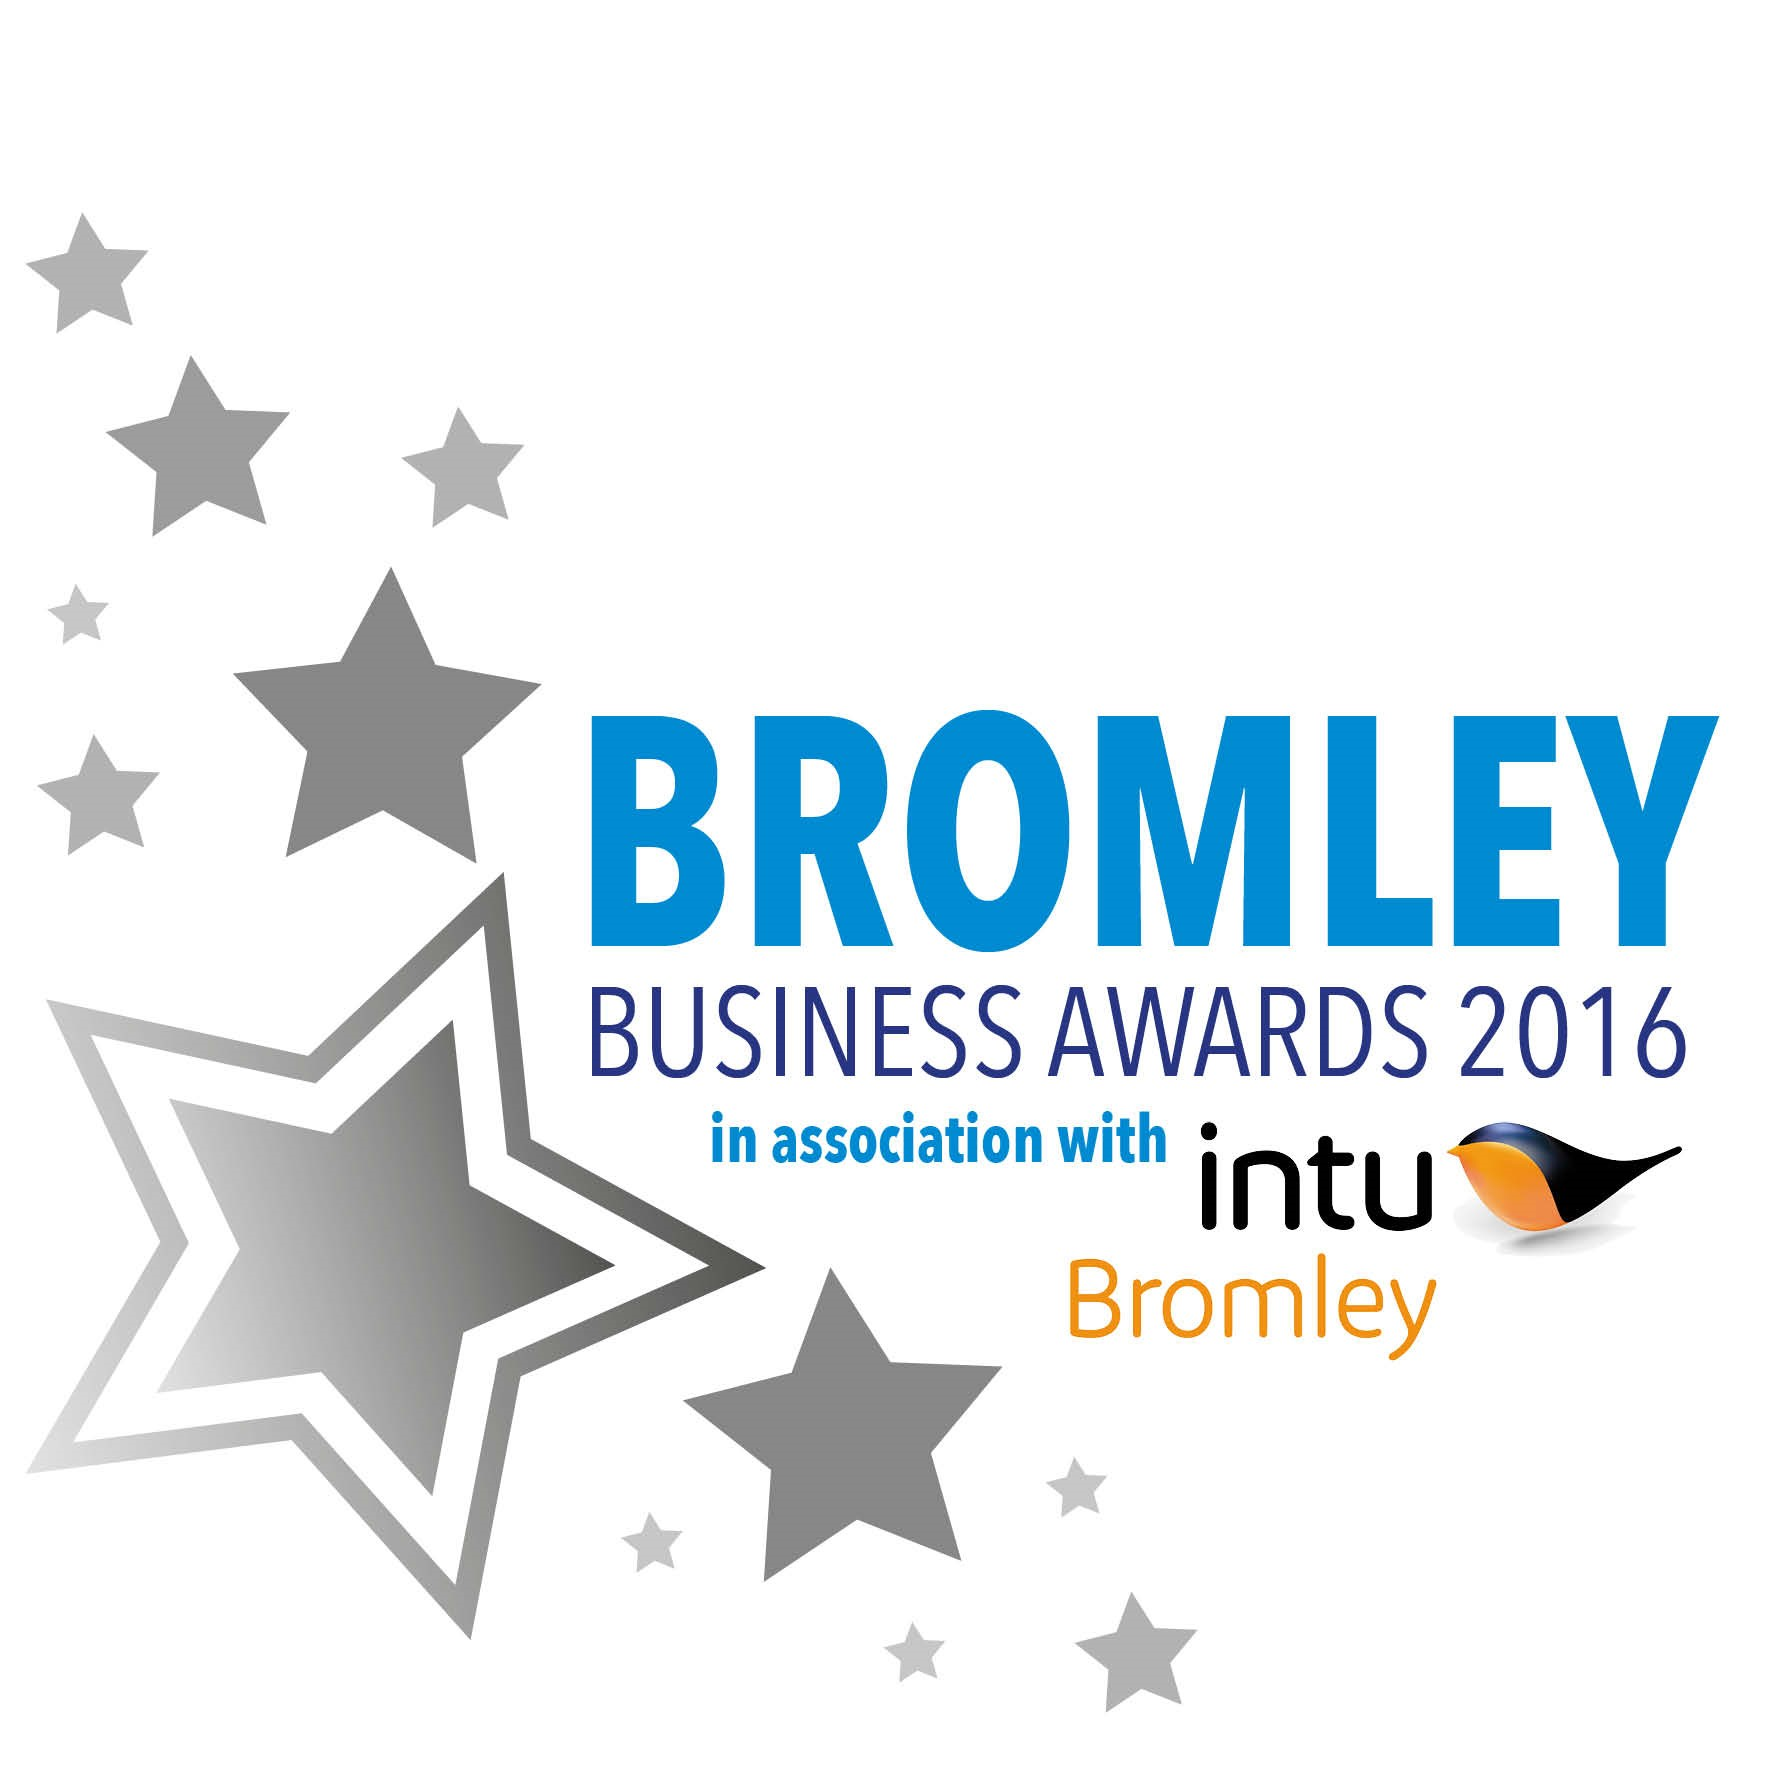 Best Business for Customer Service (Bromley Business Awards, 2016)